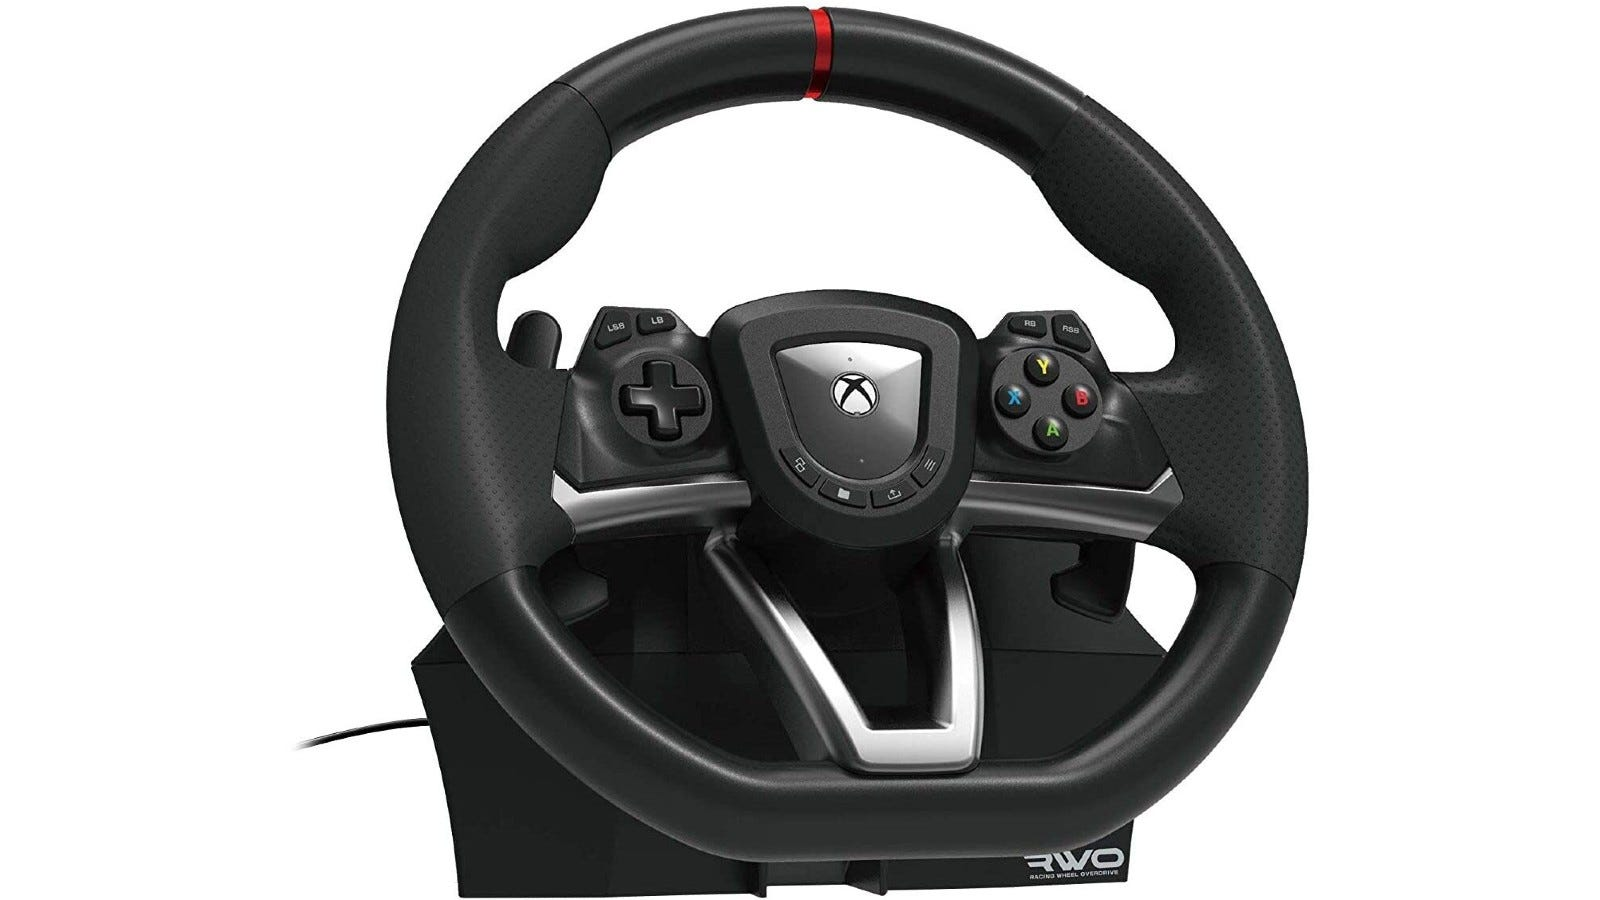 A dynamic racing wheel for Xbox consoles